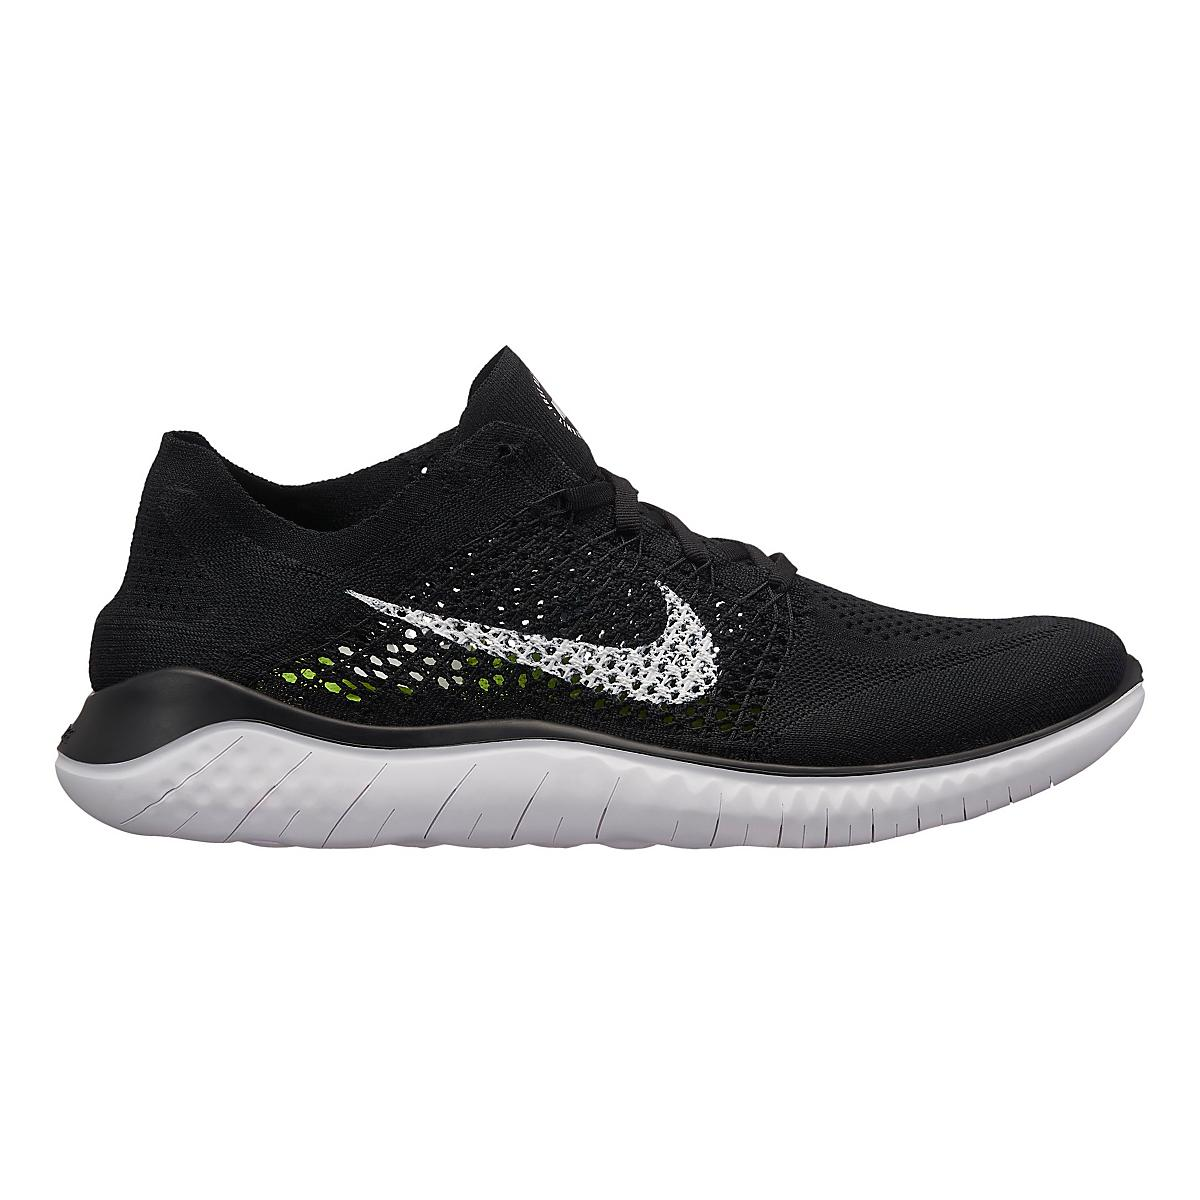 3ee4119421d72 Nike Free RN Flyknit 2018 Running Shoes from Road Runner Sports